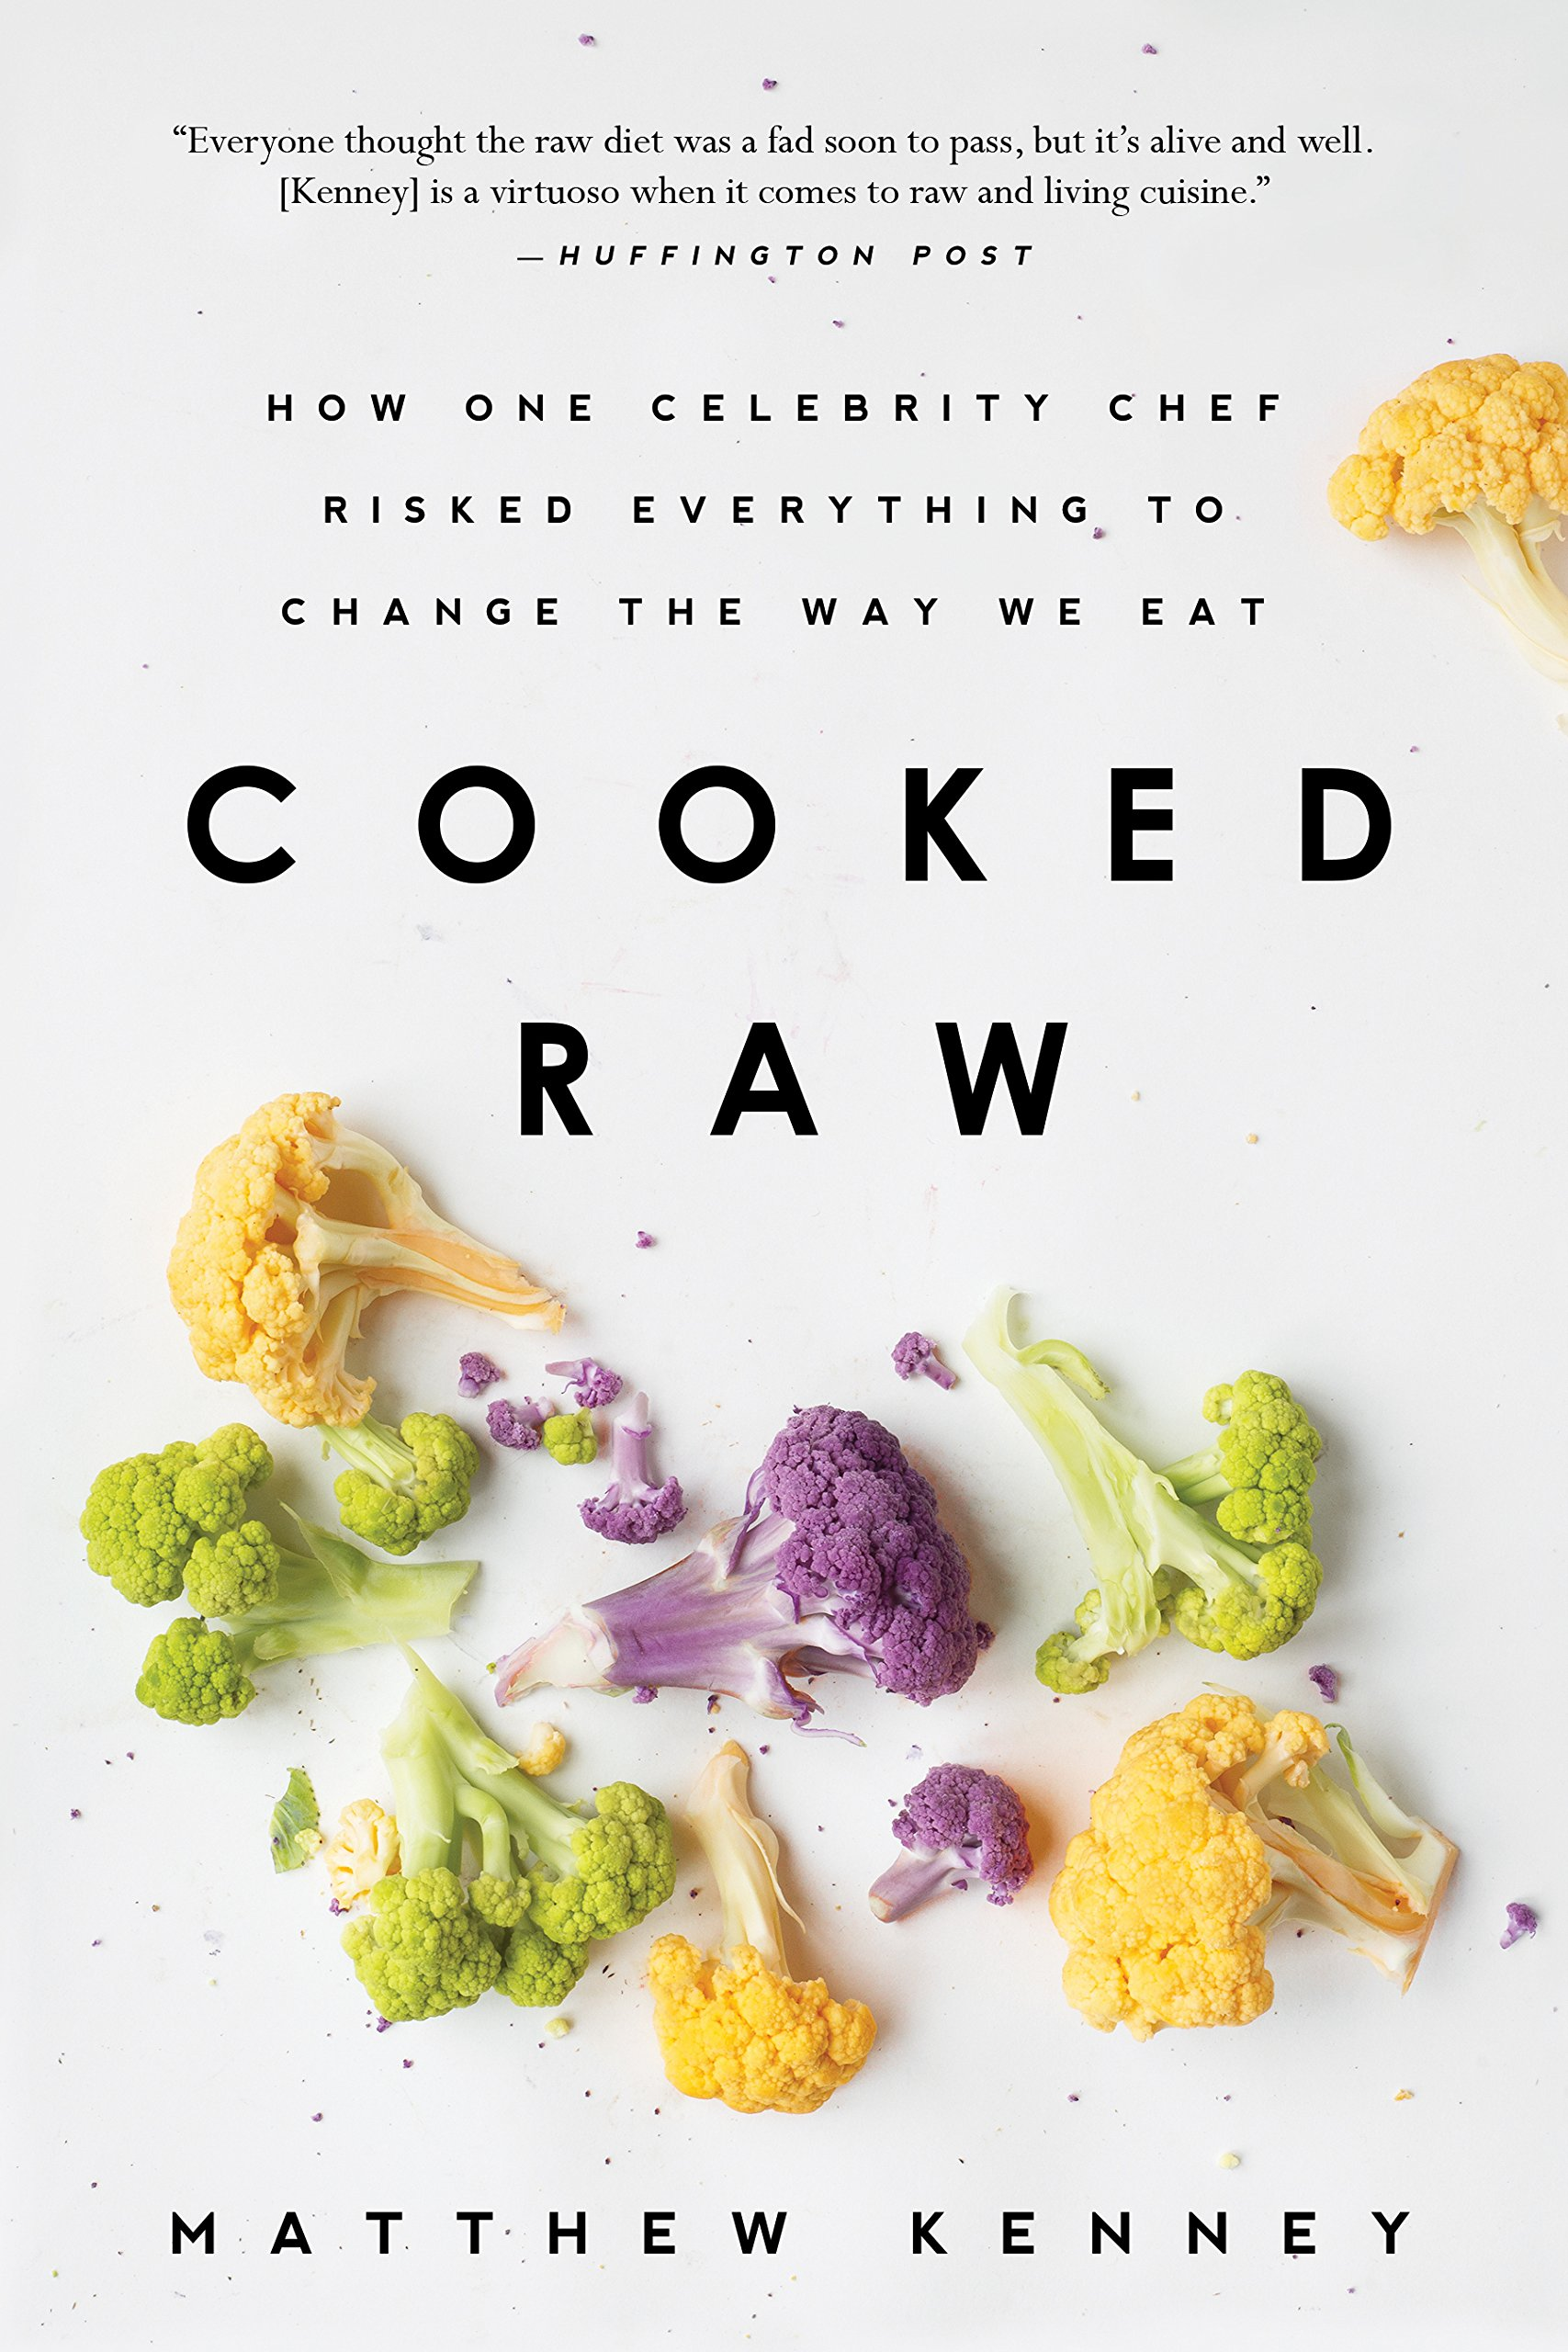 Cooked Raw: How One Celebrity Chef Risked Everything to Change the Way We Eat pdf epub